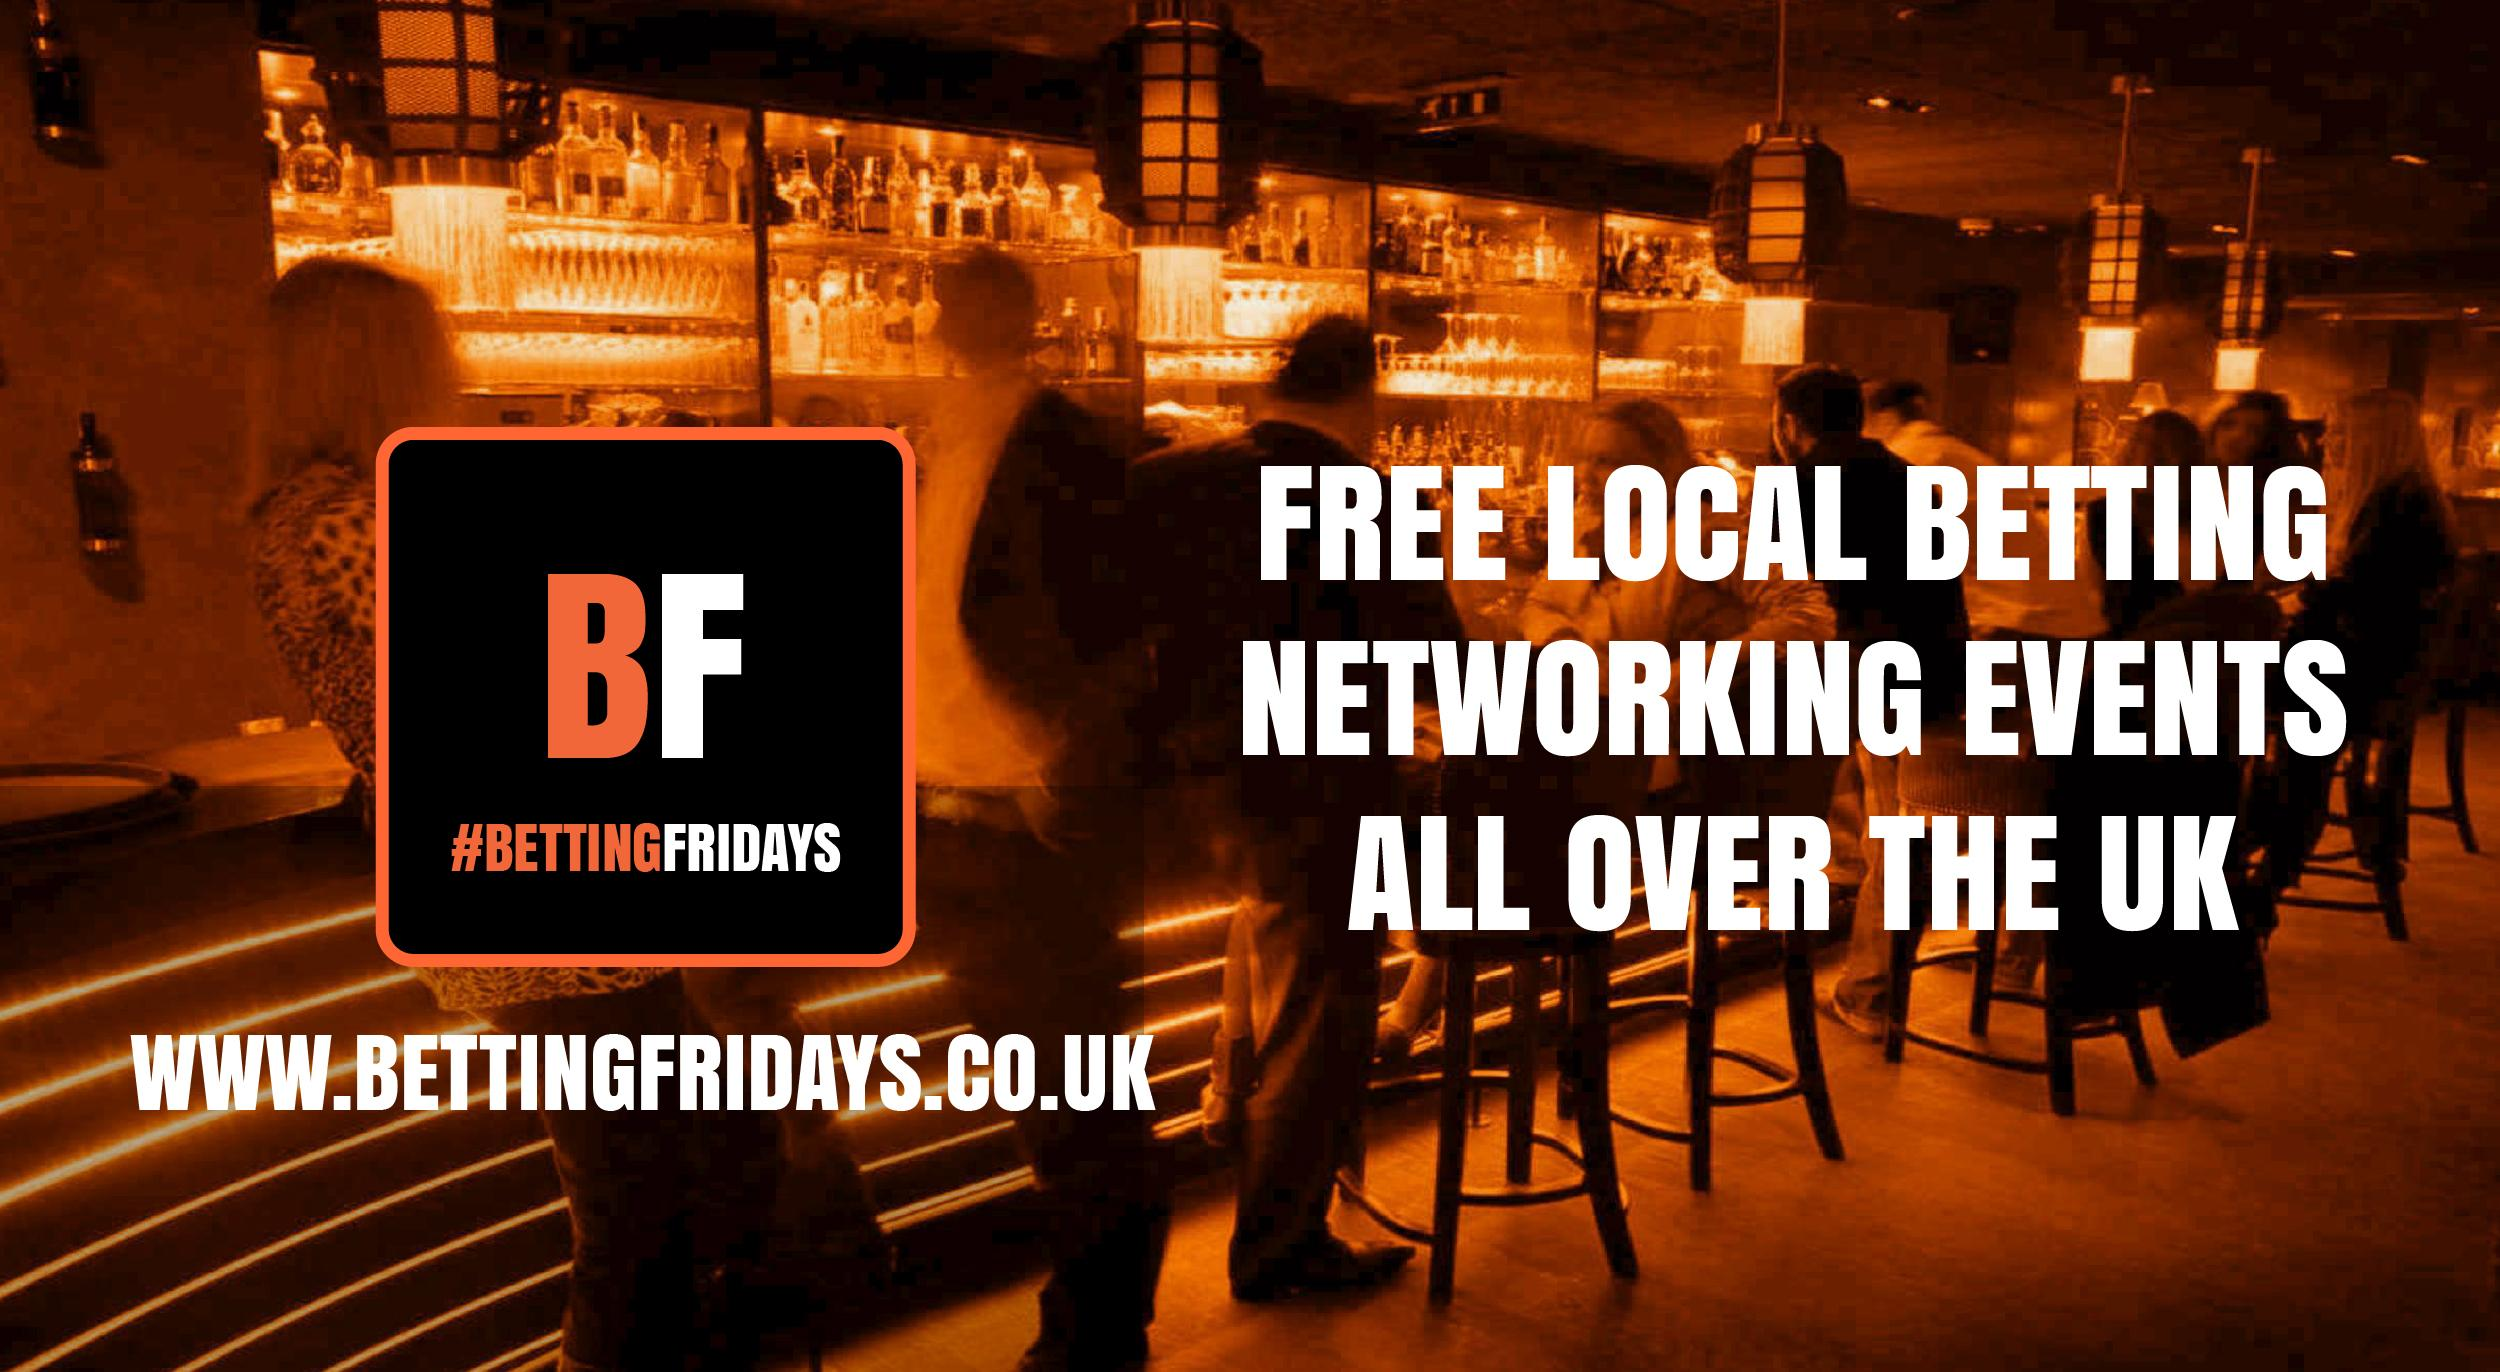 Betting Fridays! Free betting networking event in Wath-upon-Dearne